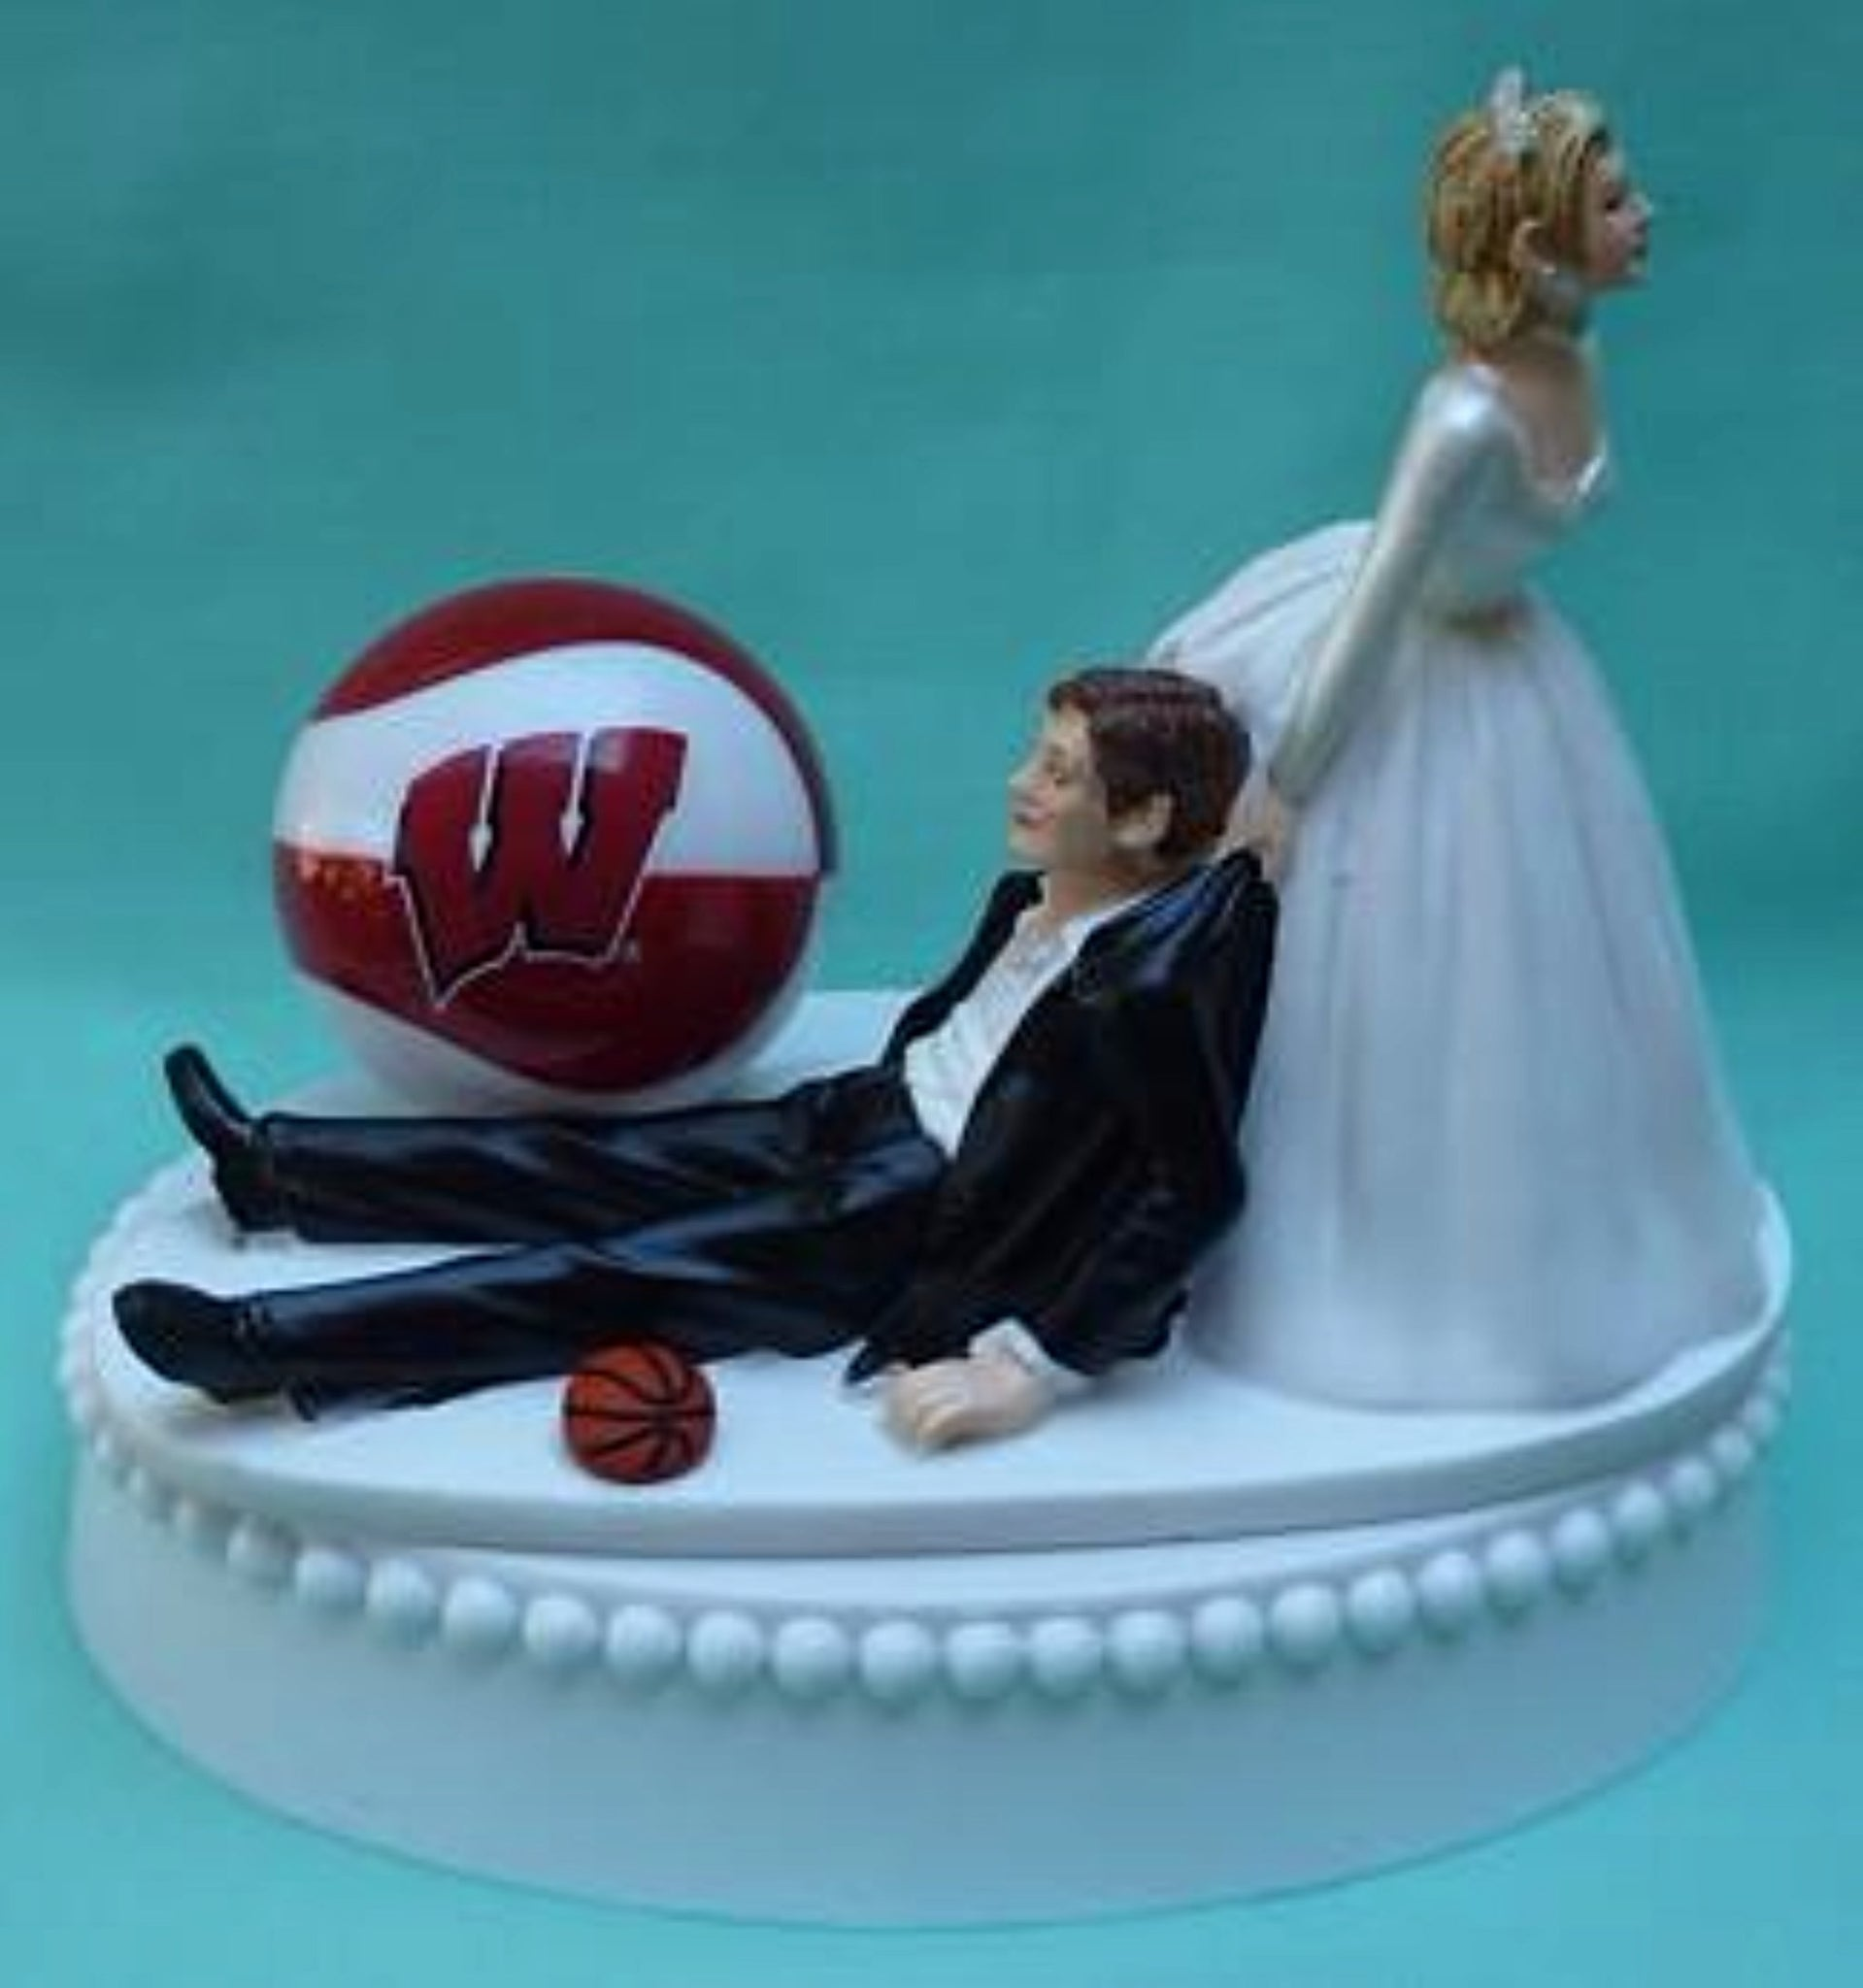 Wisconsin Badgers basketball wedding cake topper University of UW funny bride groom humorous sports Fun Wedding Things